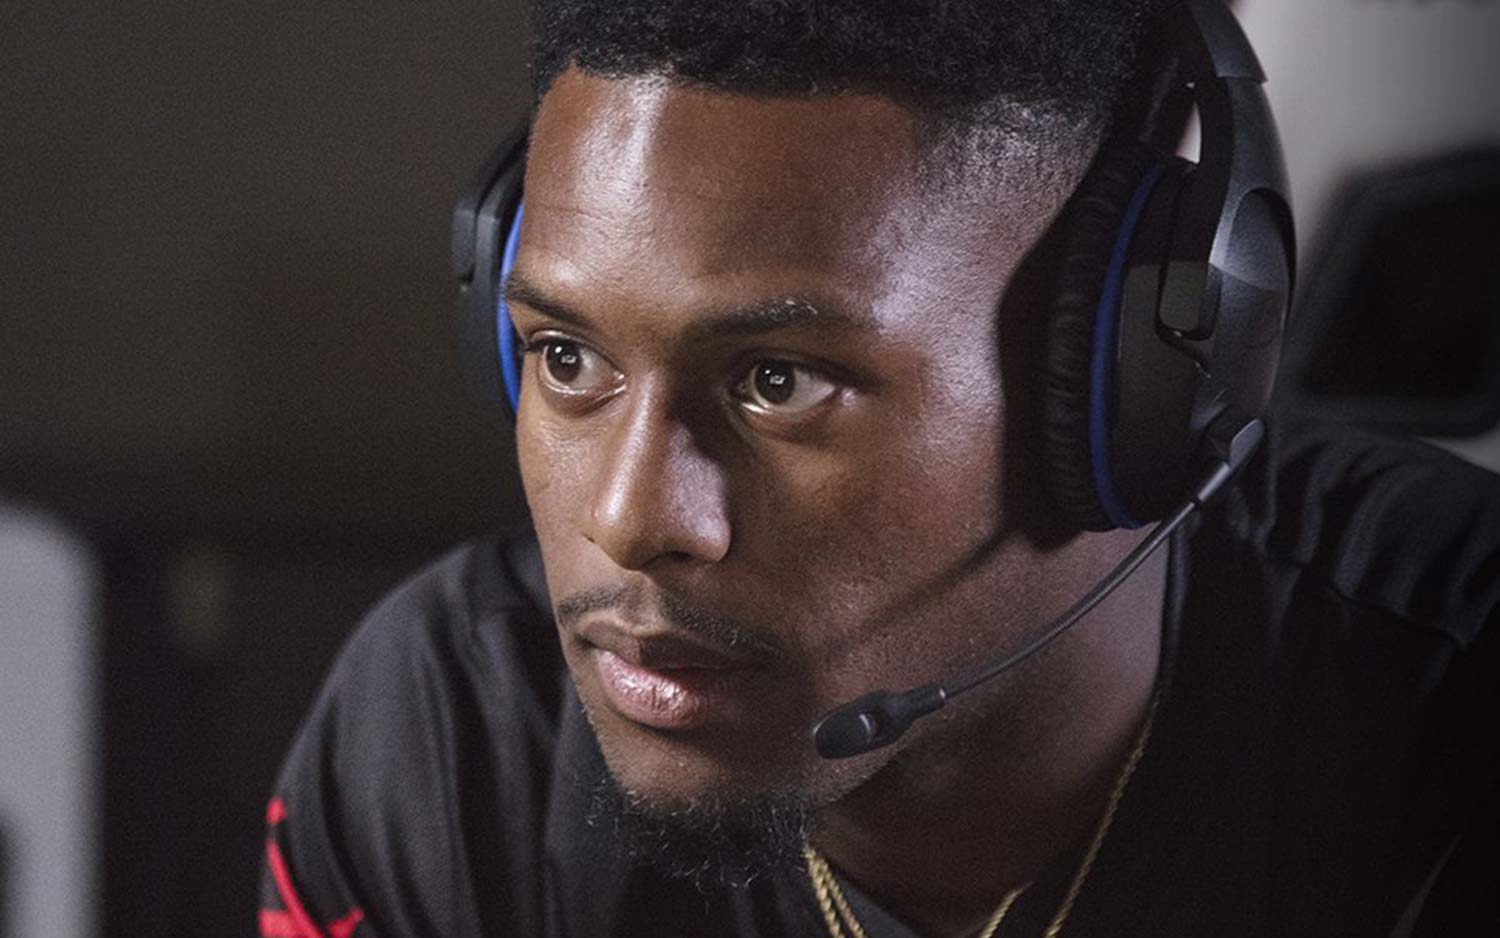 HyperX Cloud Stinger Wireless Headset Review: Great Sub-$100